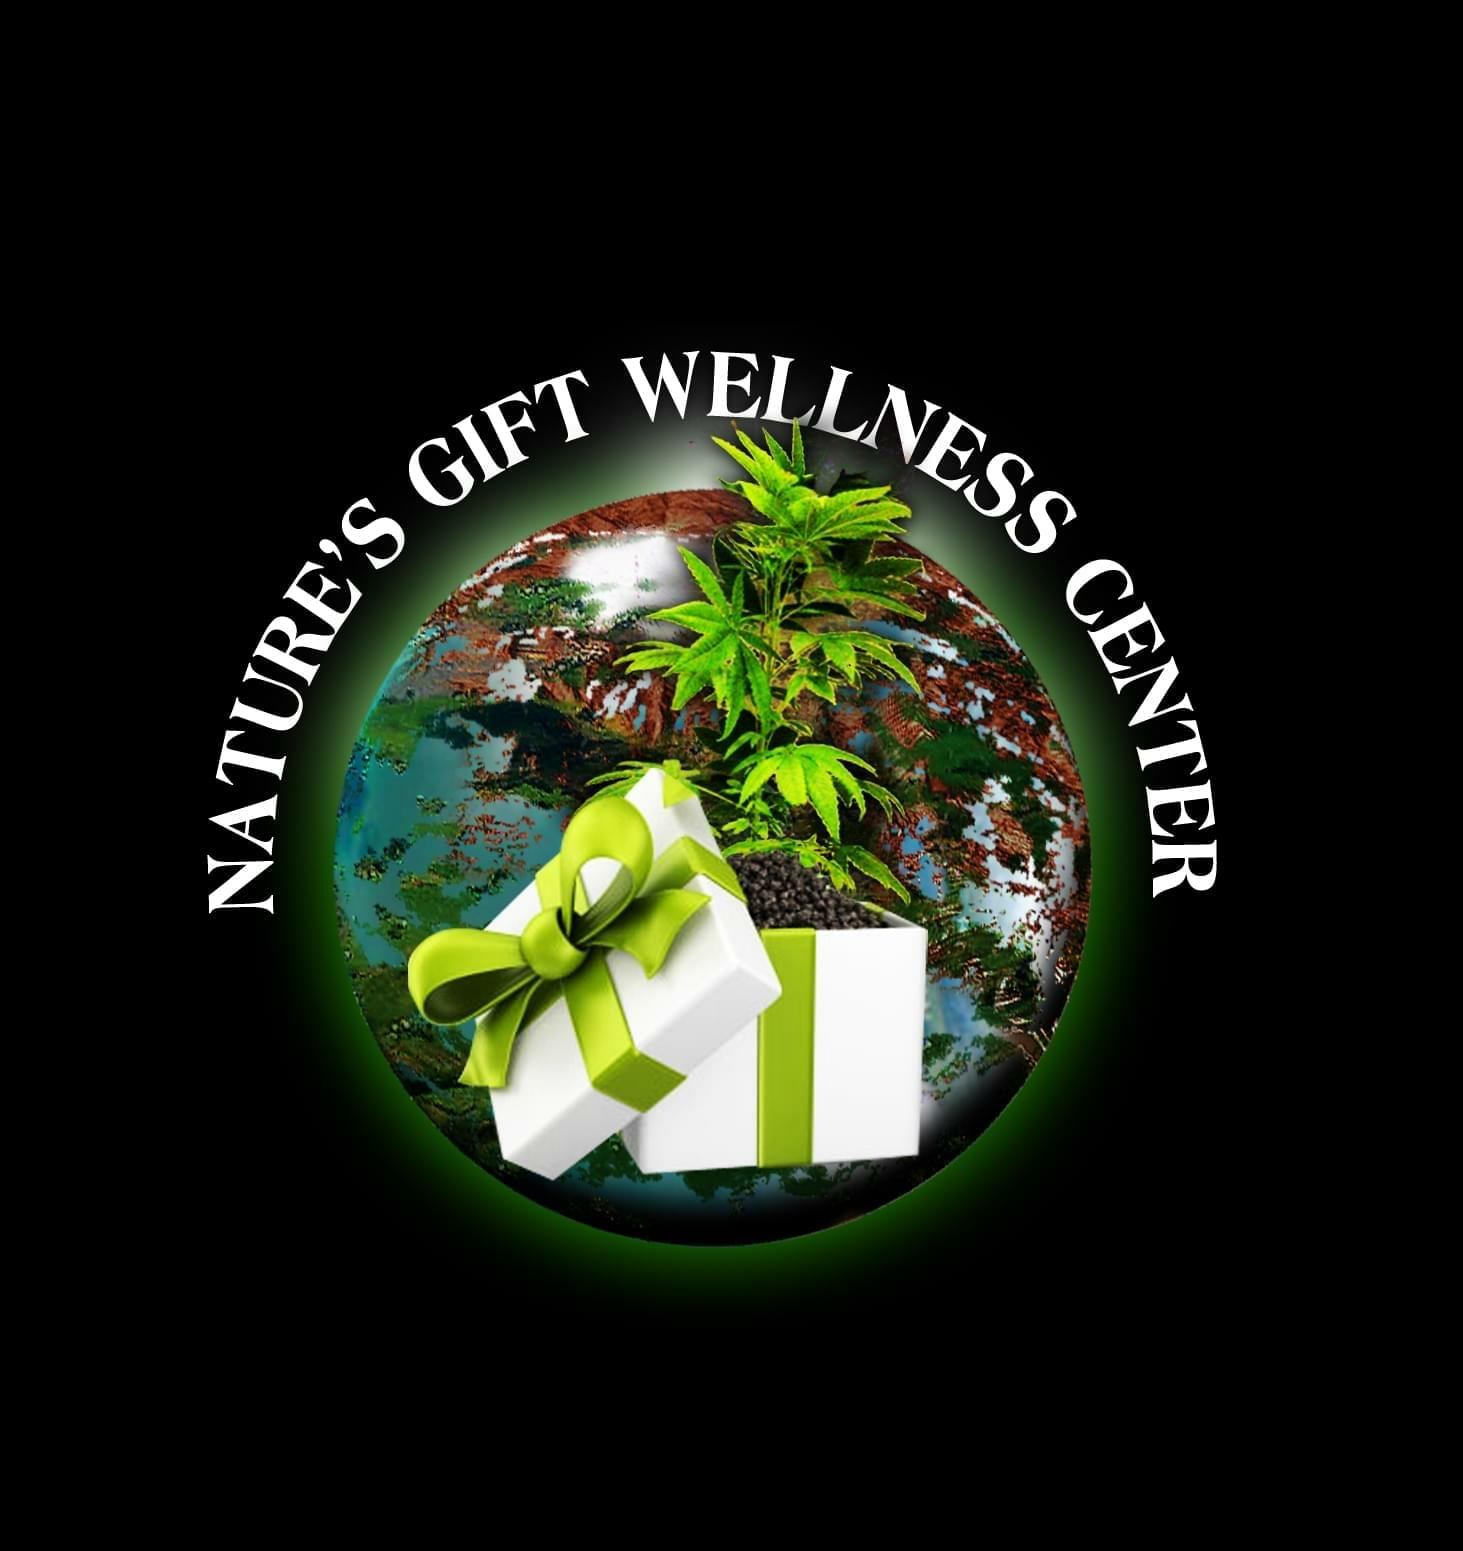 Nature's Gift Wellness Center